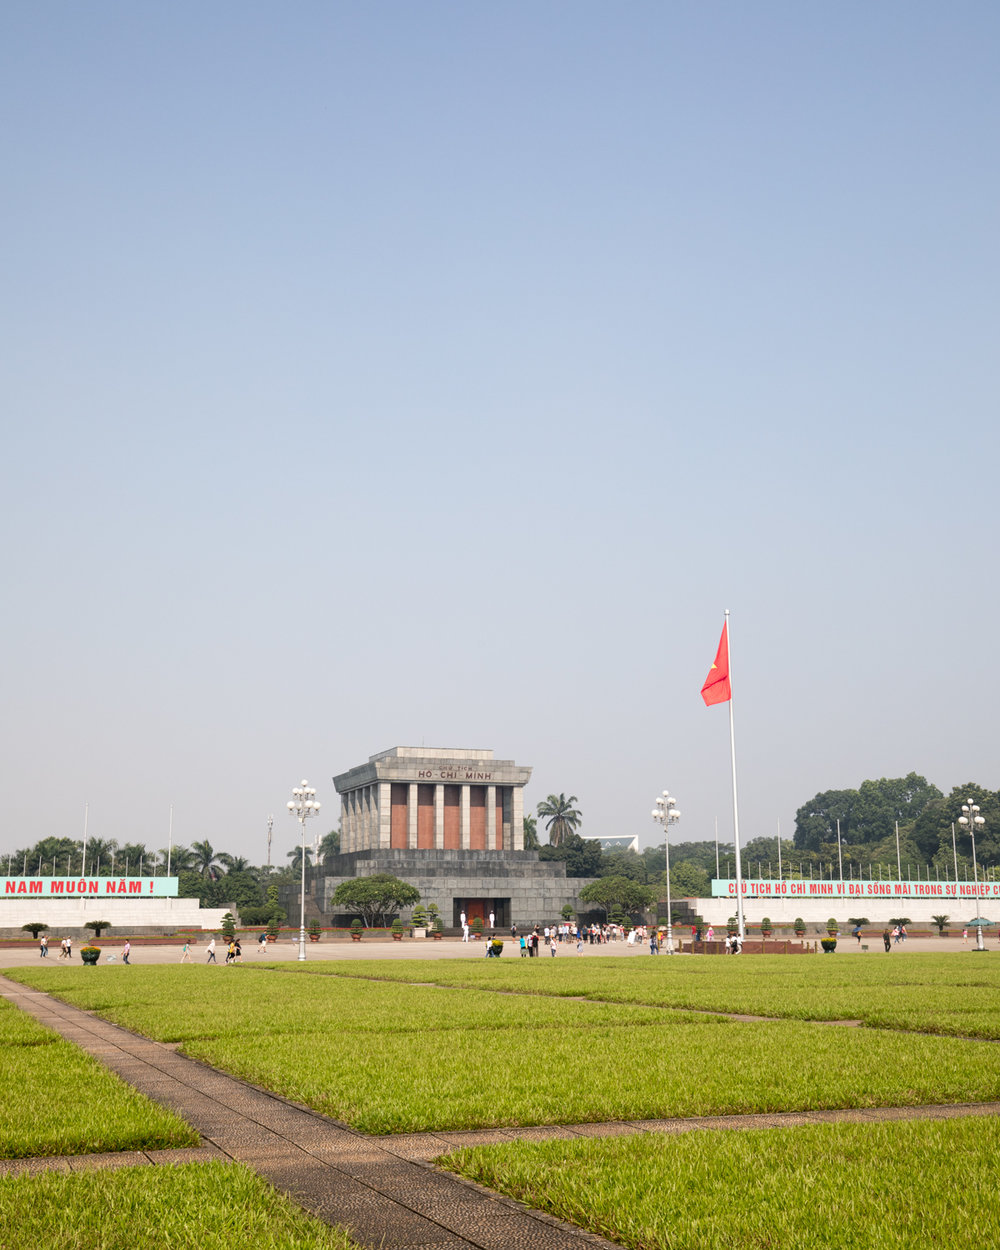 The Mausoleum of Ho Chi Minh